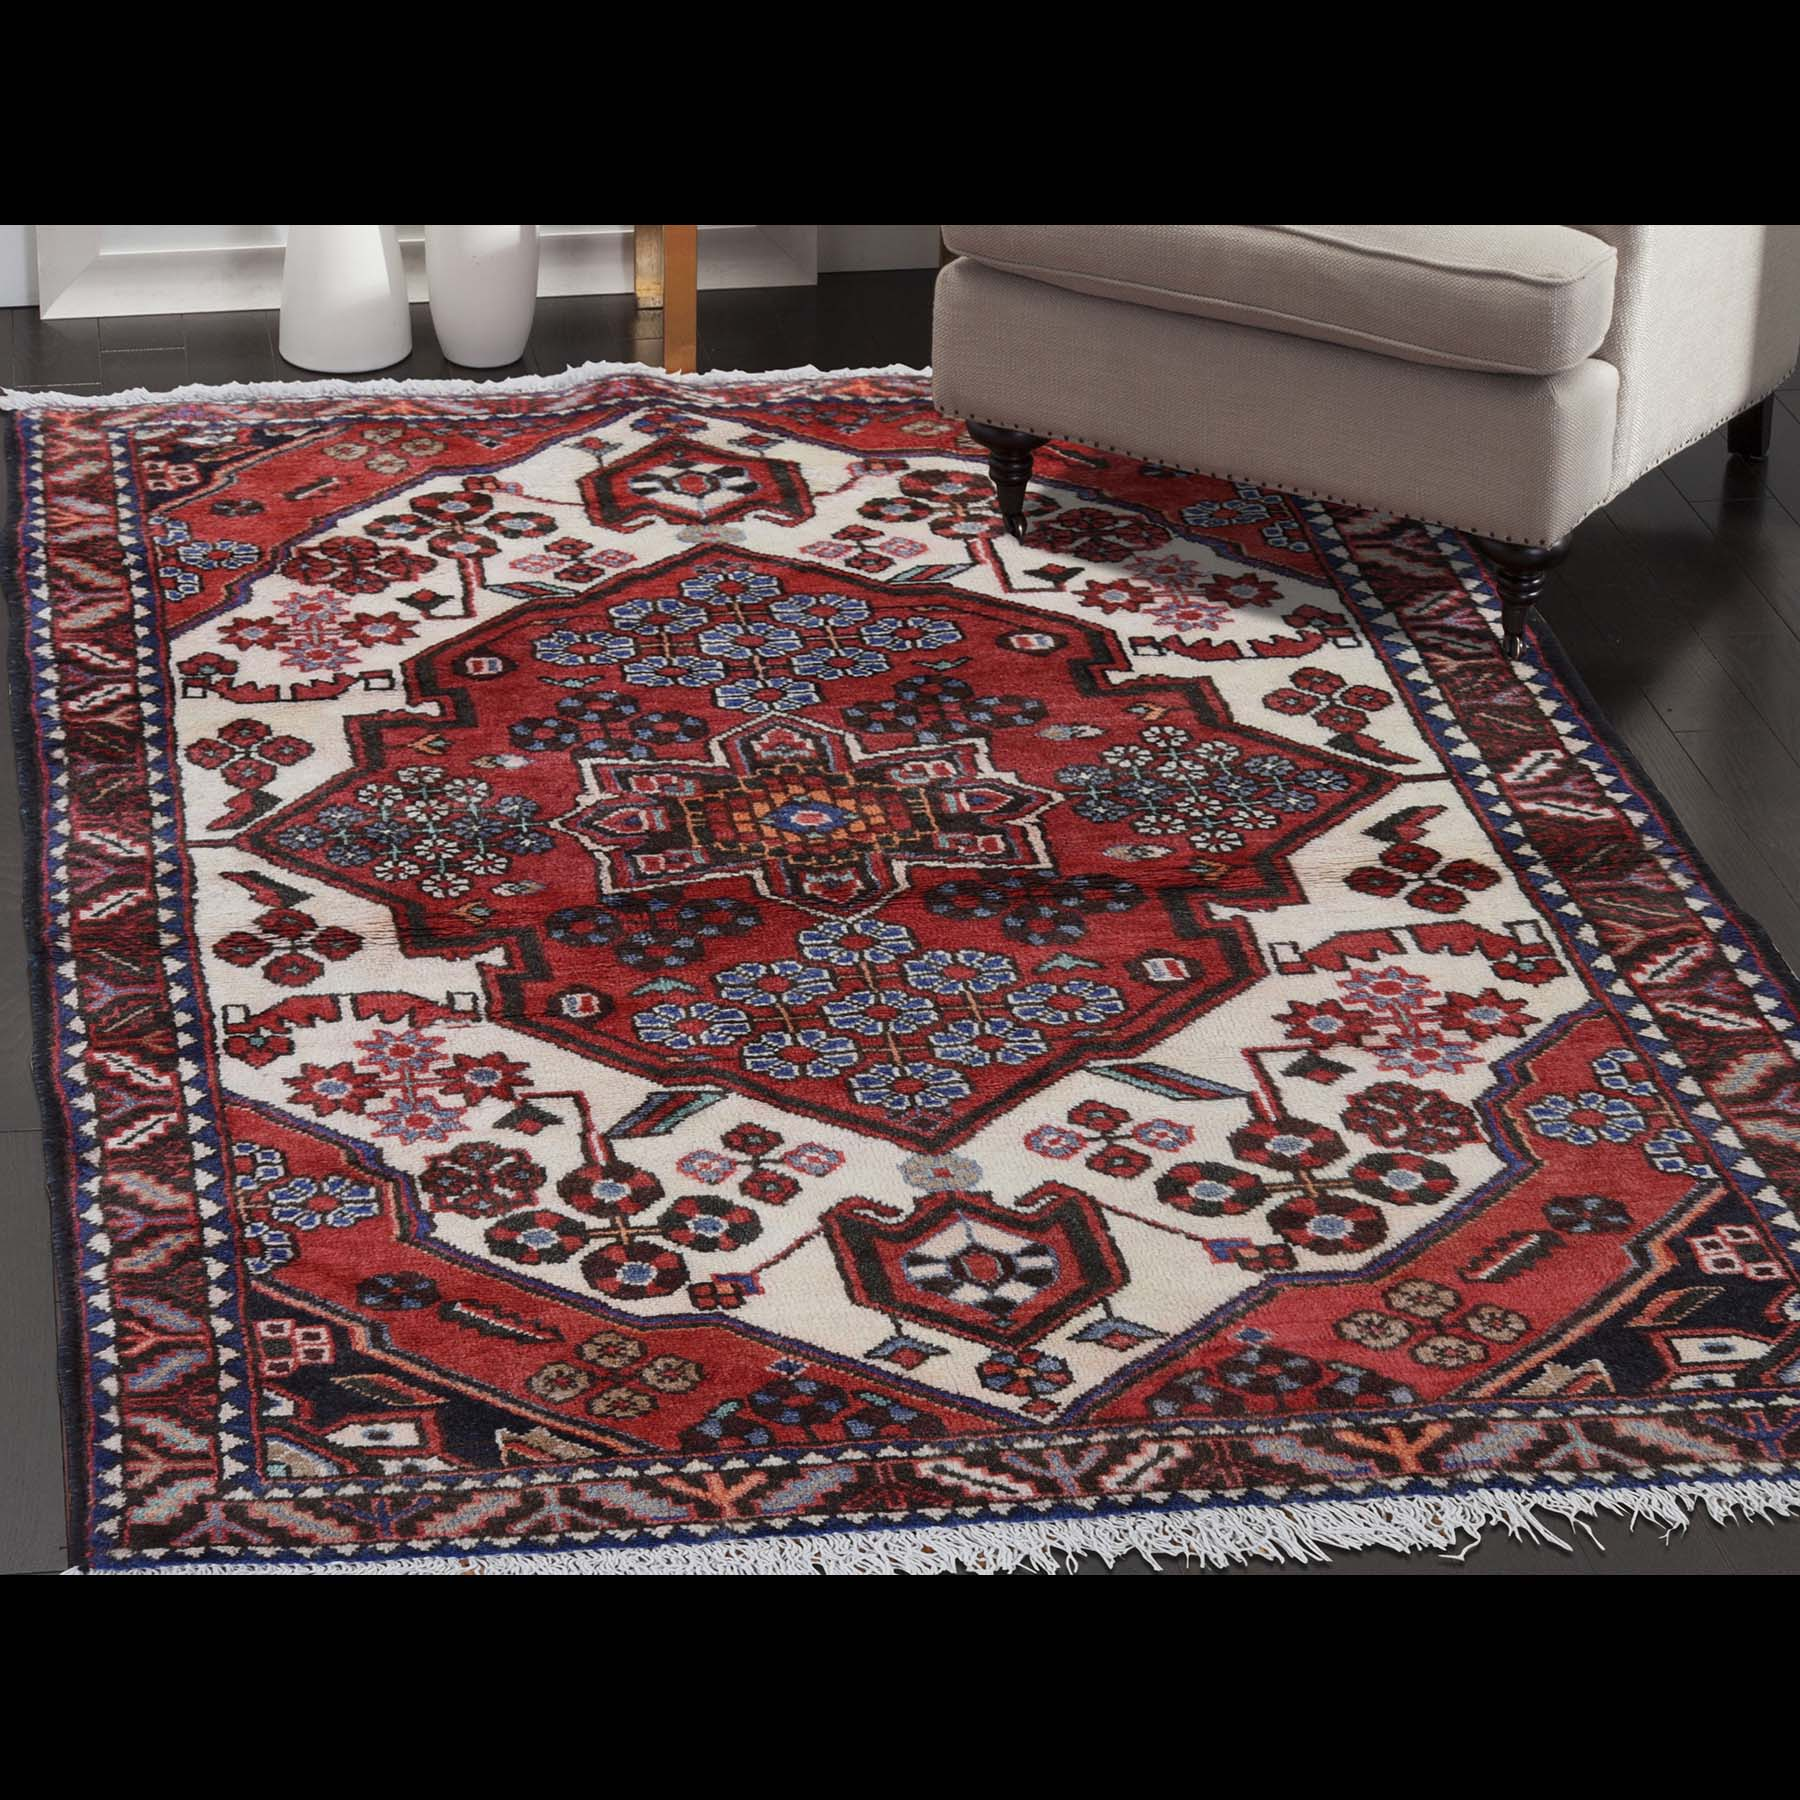 3-8 x5- Pure Wool New Persian Mazlagan Hand-Knotted Oriental Rug